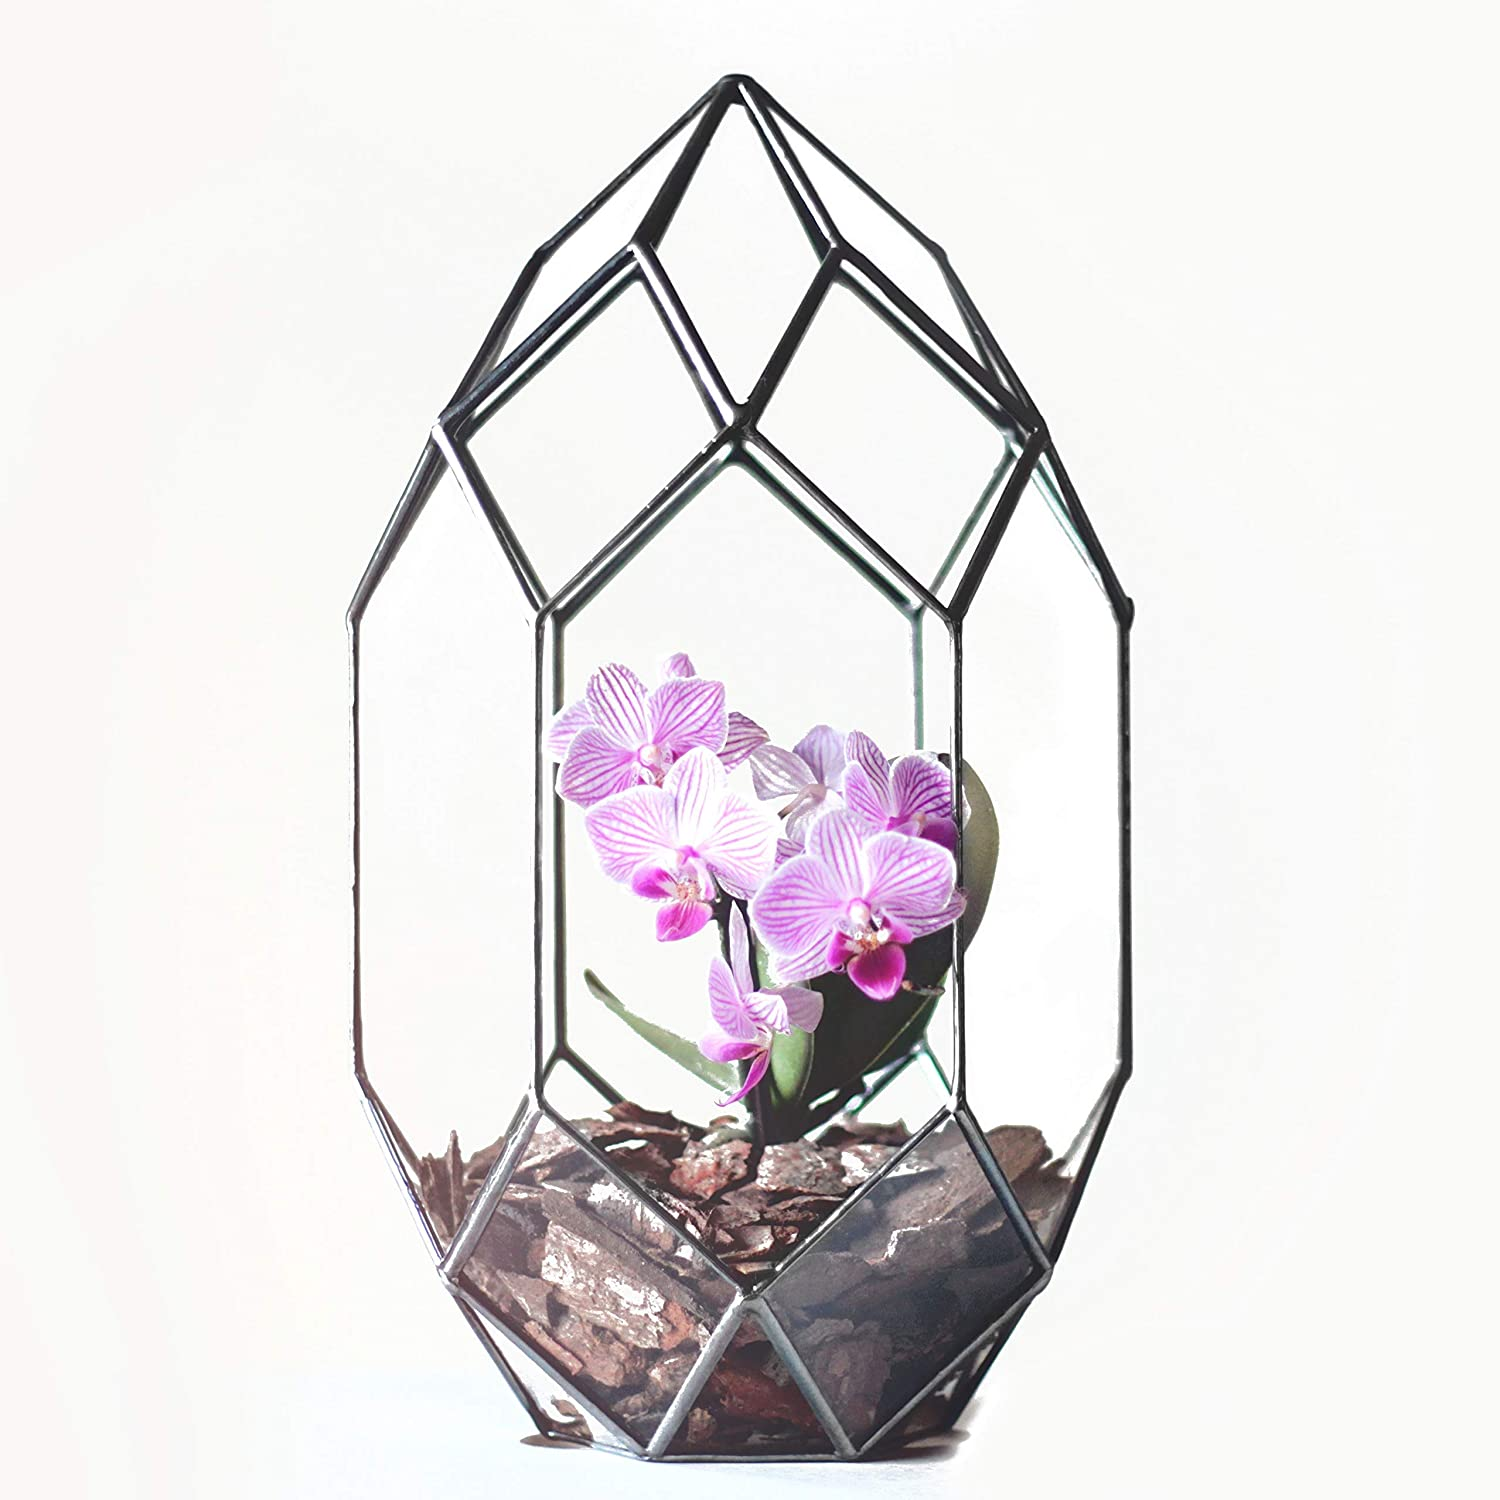 Waen Terrarium Collection Large Glass Geometric Orchid Planter (Copper, Silver, Black)